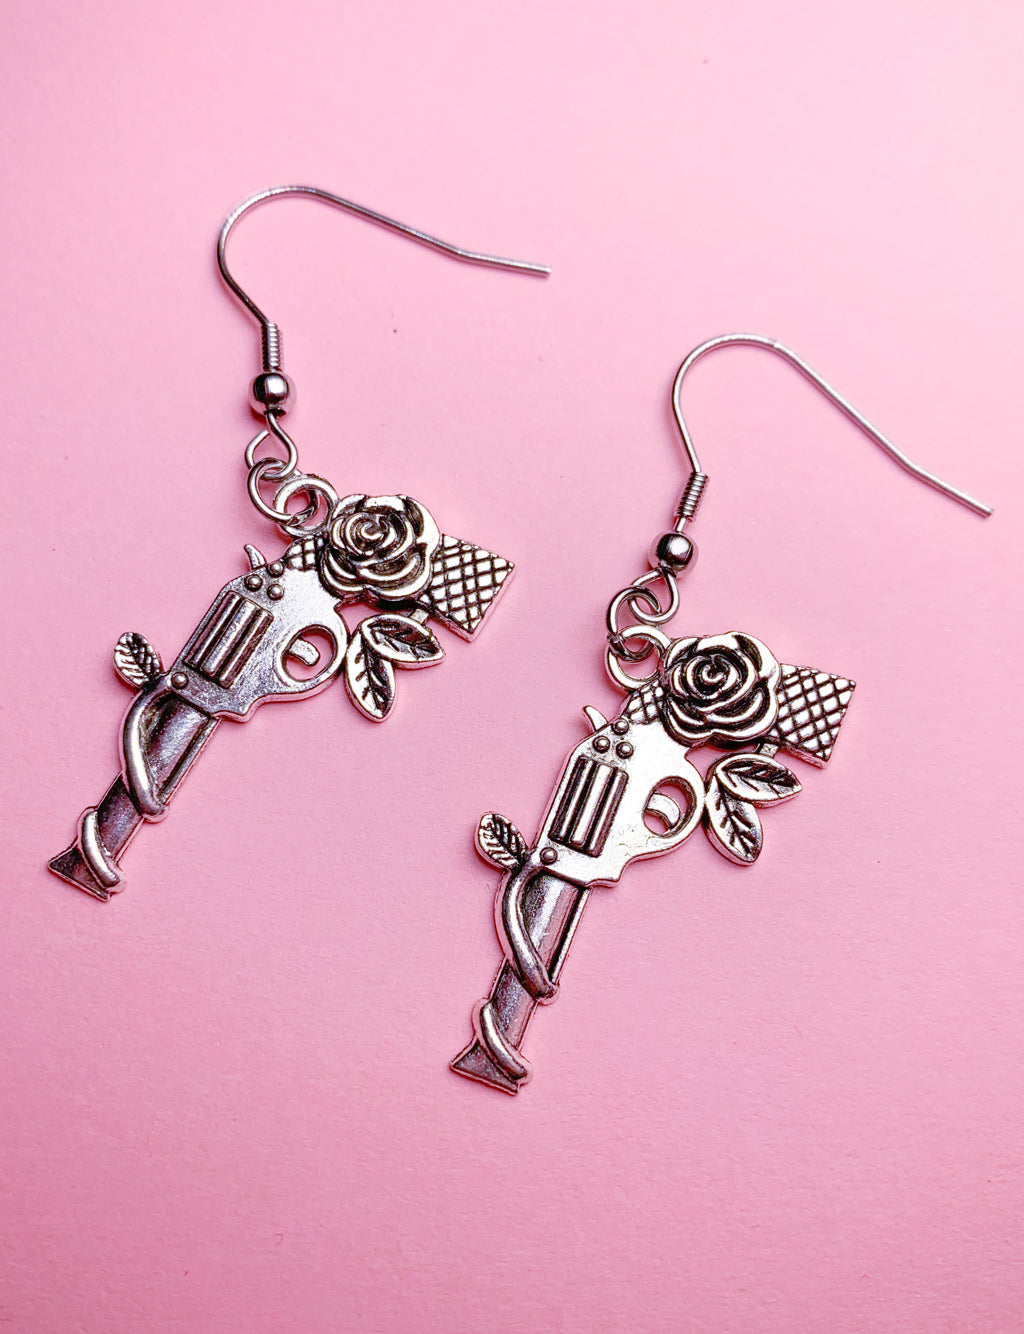 ROSE REVOLVER EARRINGS